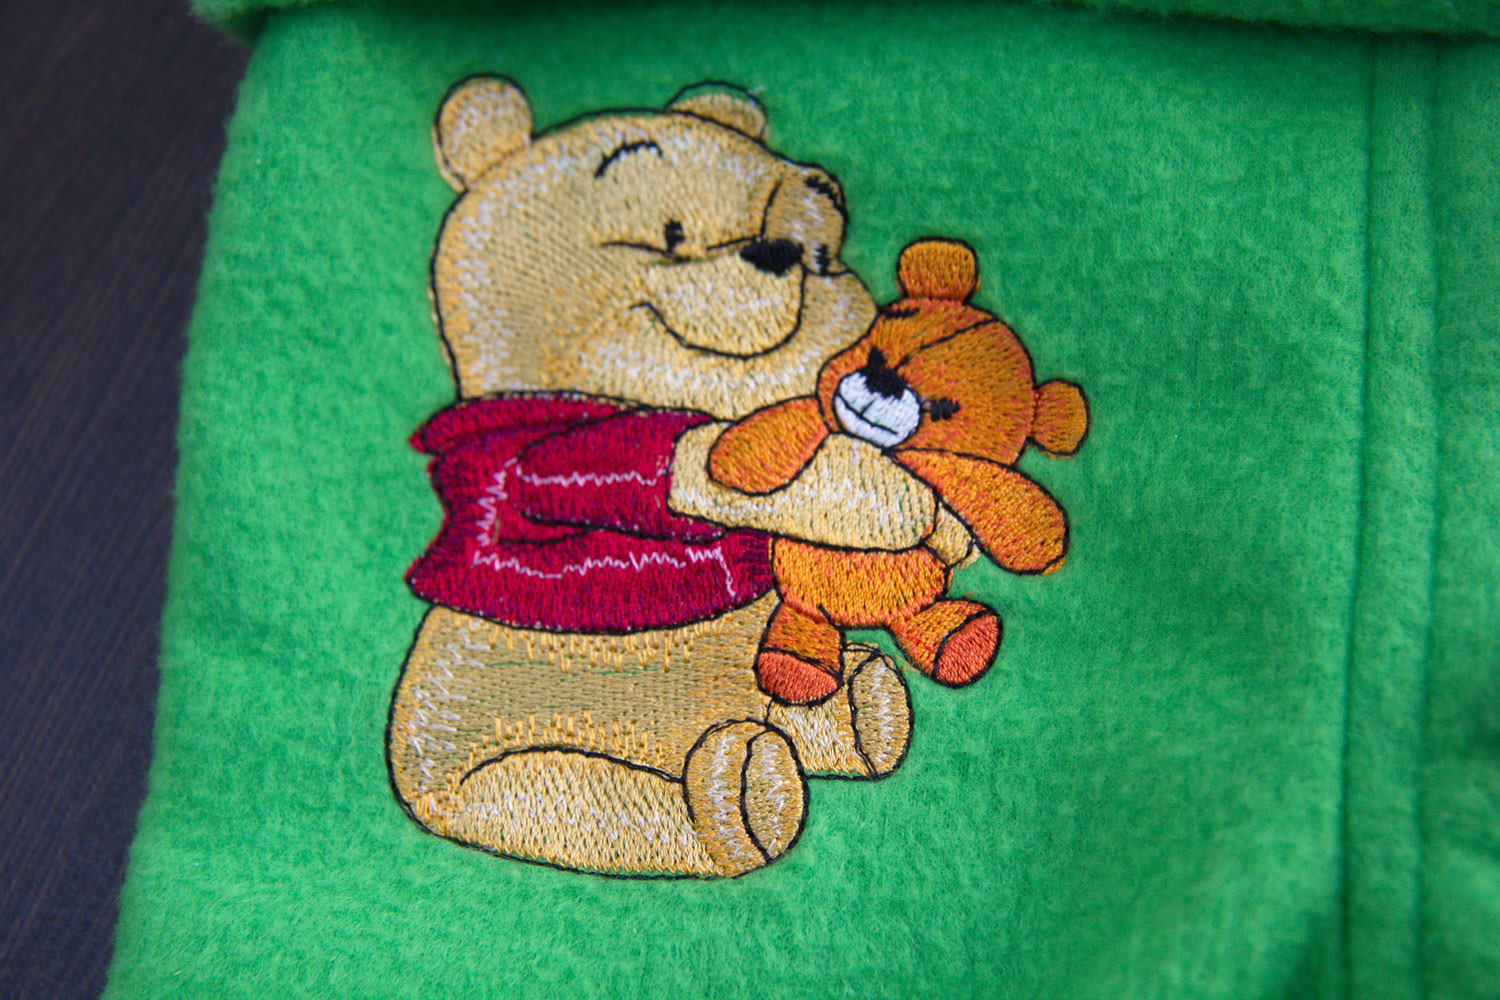 Baby Pooh with toy design on baby wear embroidered